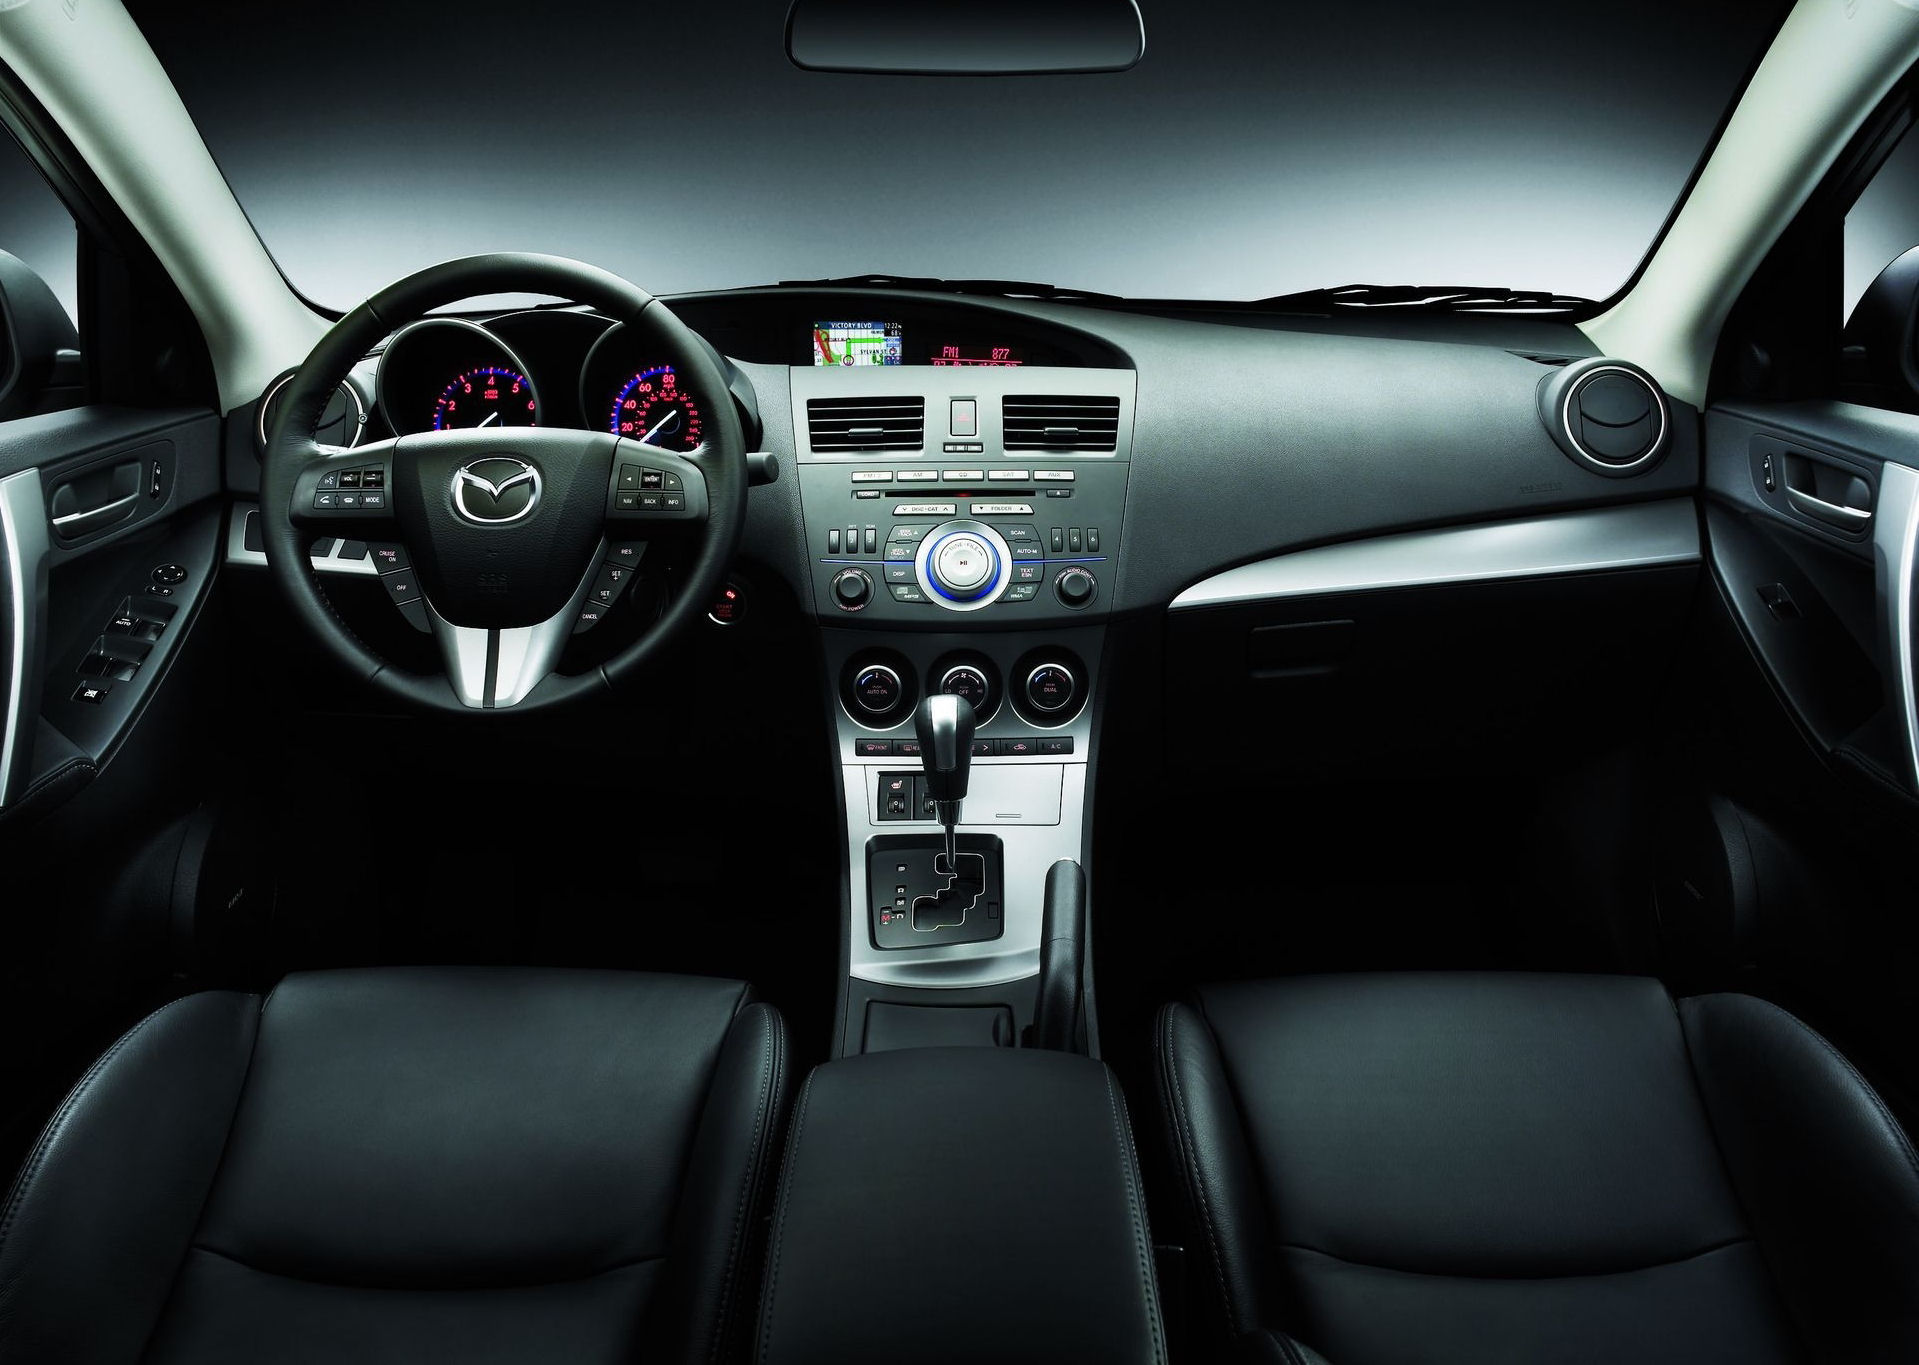 mazda 3 sedan 2009 interieur 1 mazda 3 sedan 2009 interieur image1